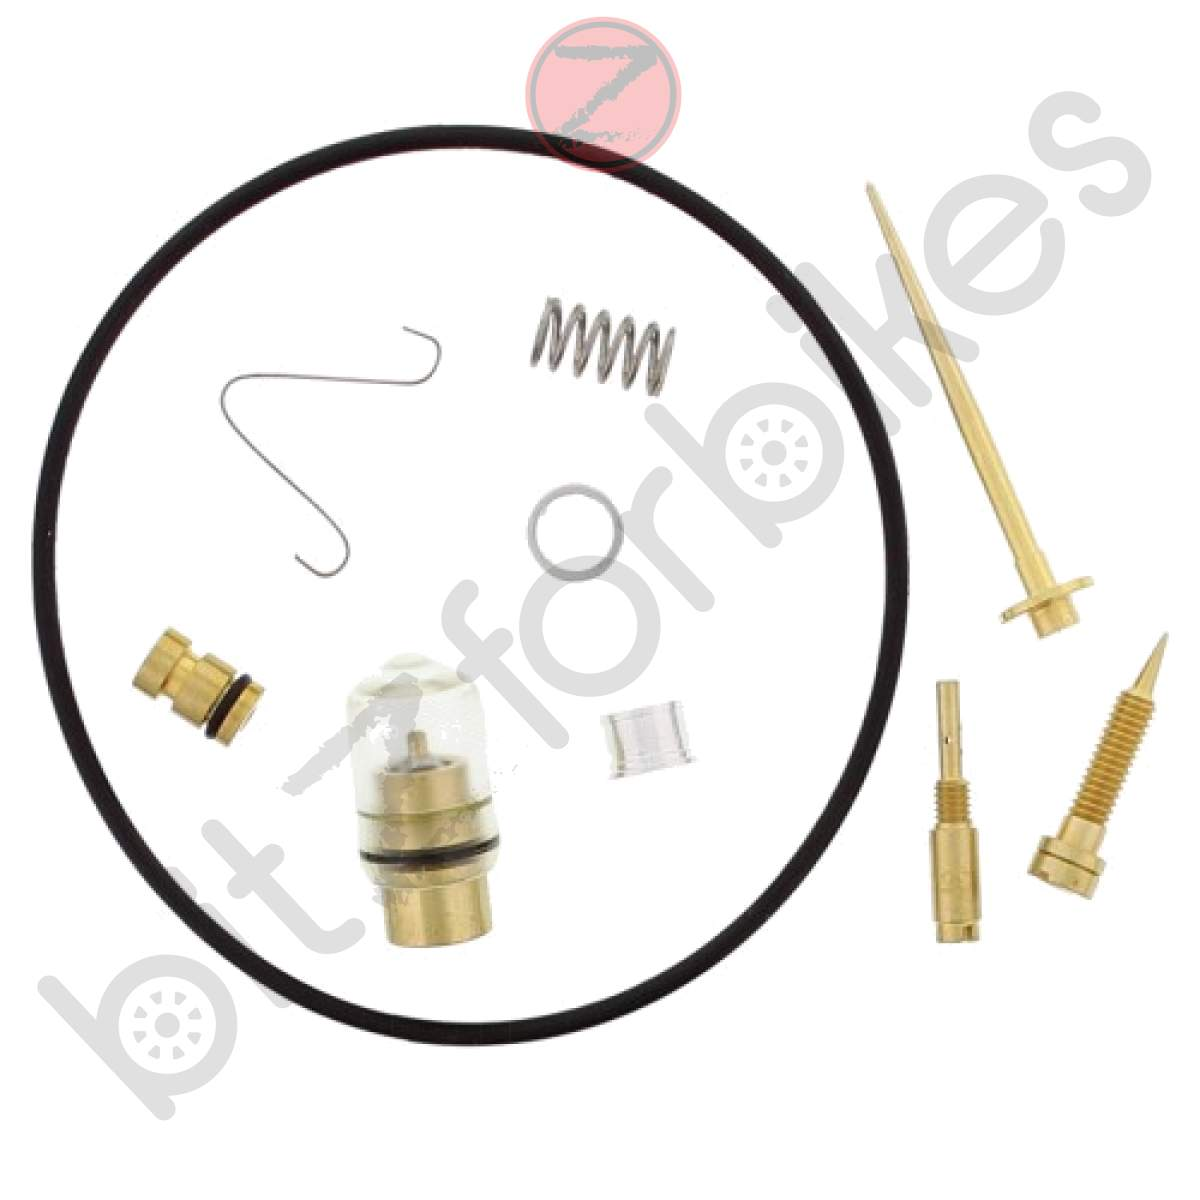 Carb Carburettor Repair Kit JMP Honda CB 250 K4 1972.